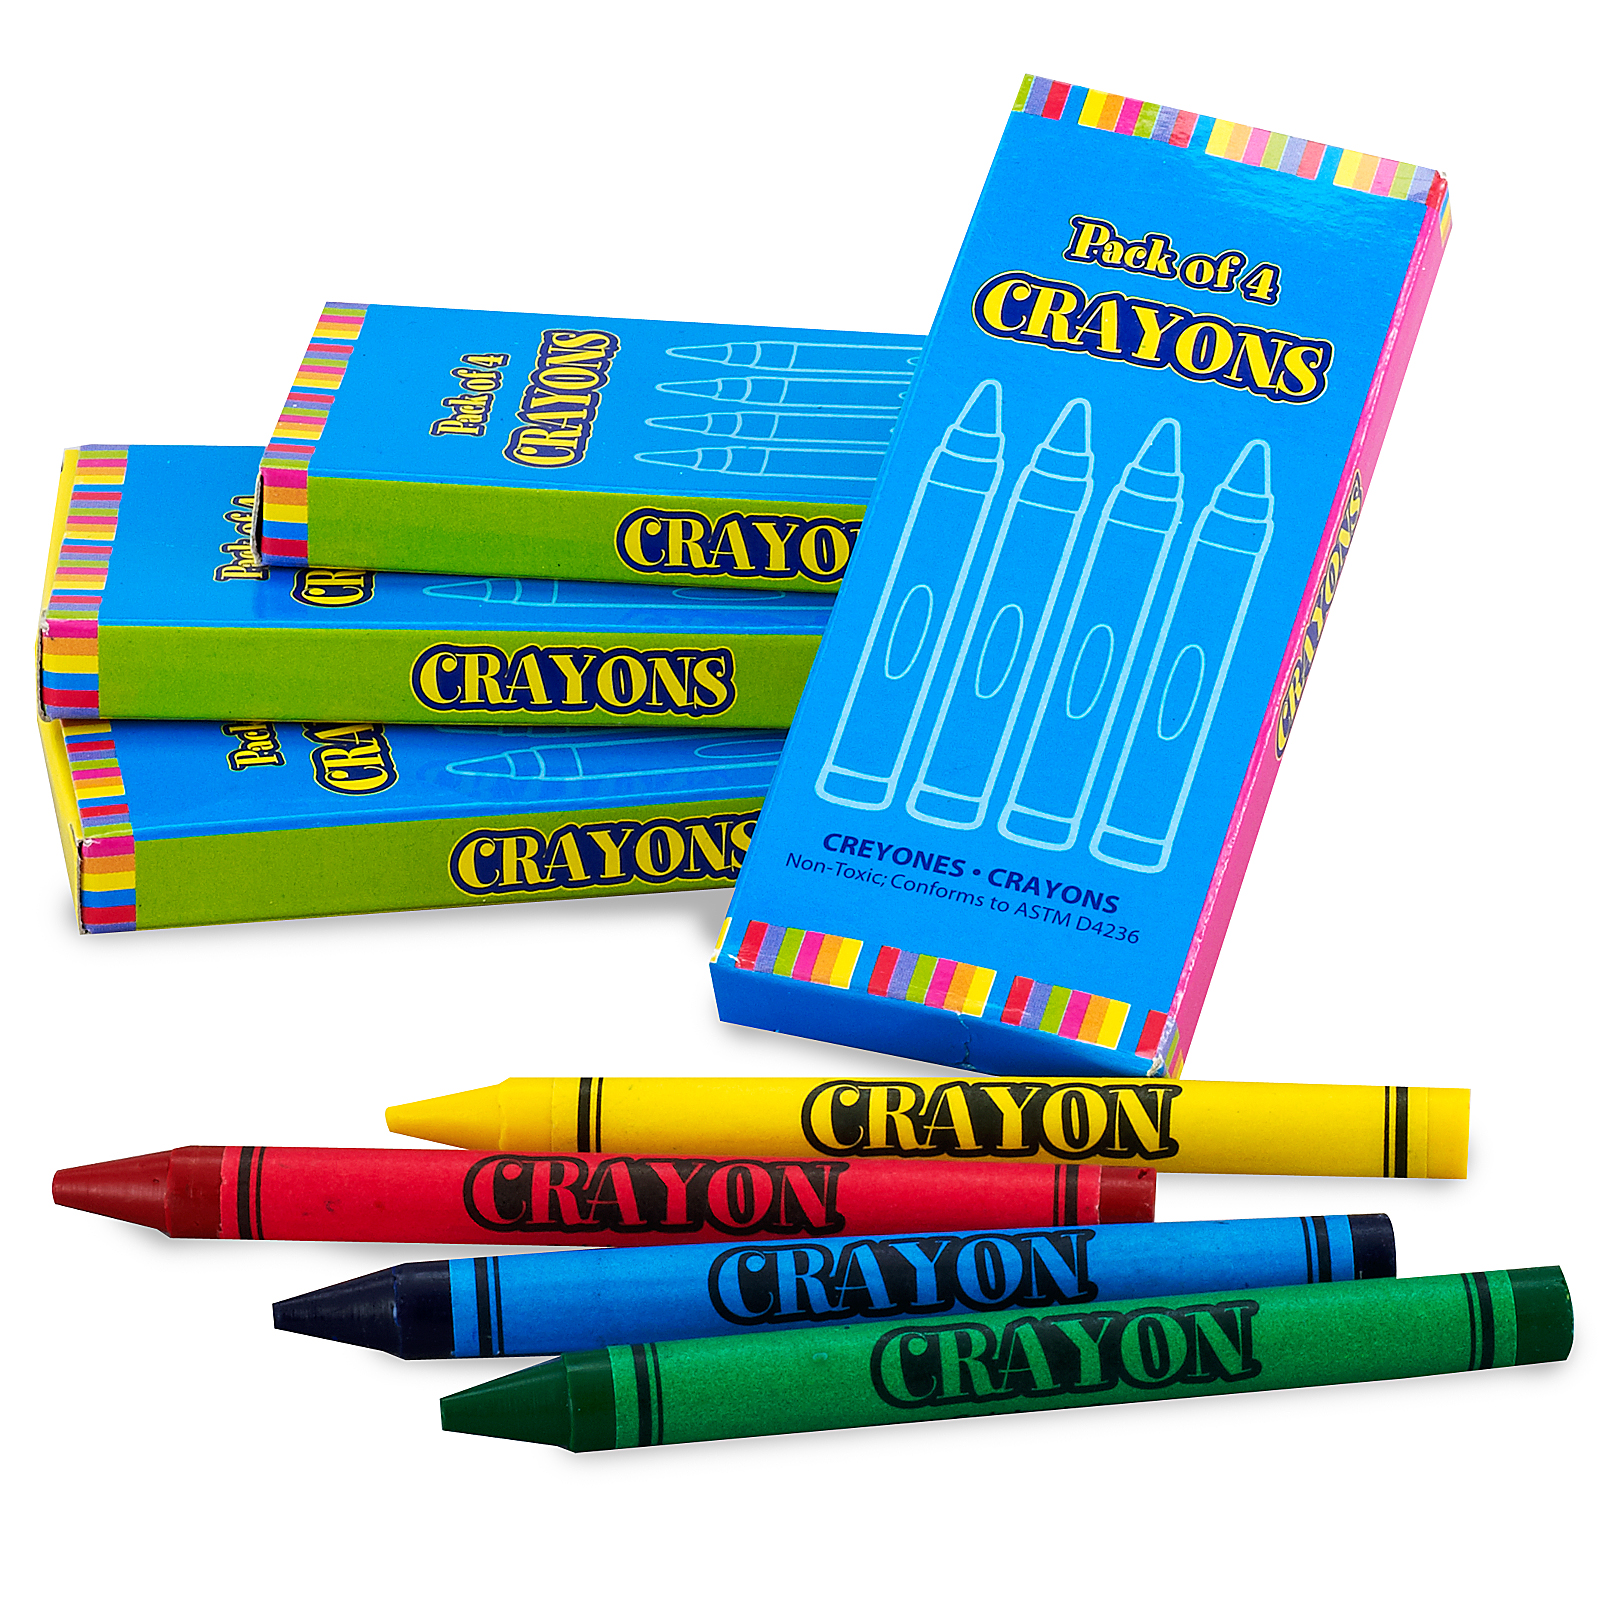 Main Colors In A Crayon Box Primary Crayon Boxes Bx